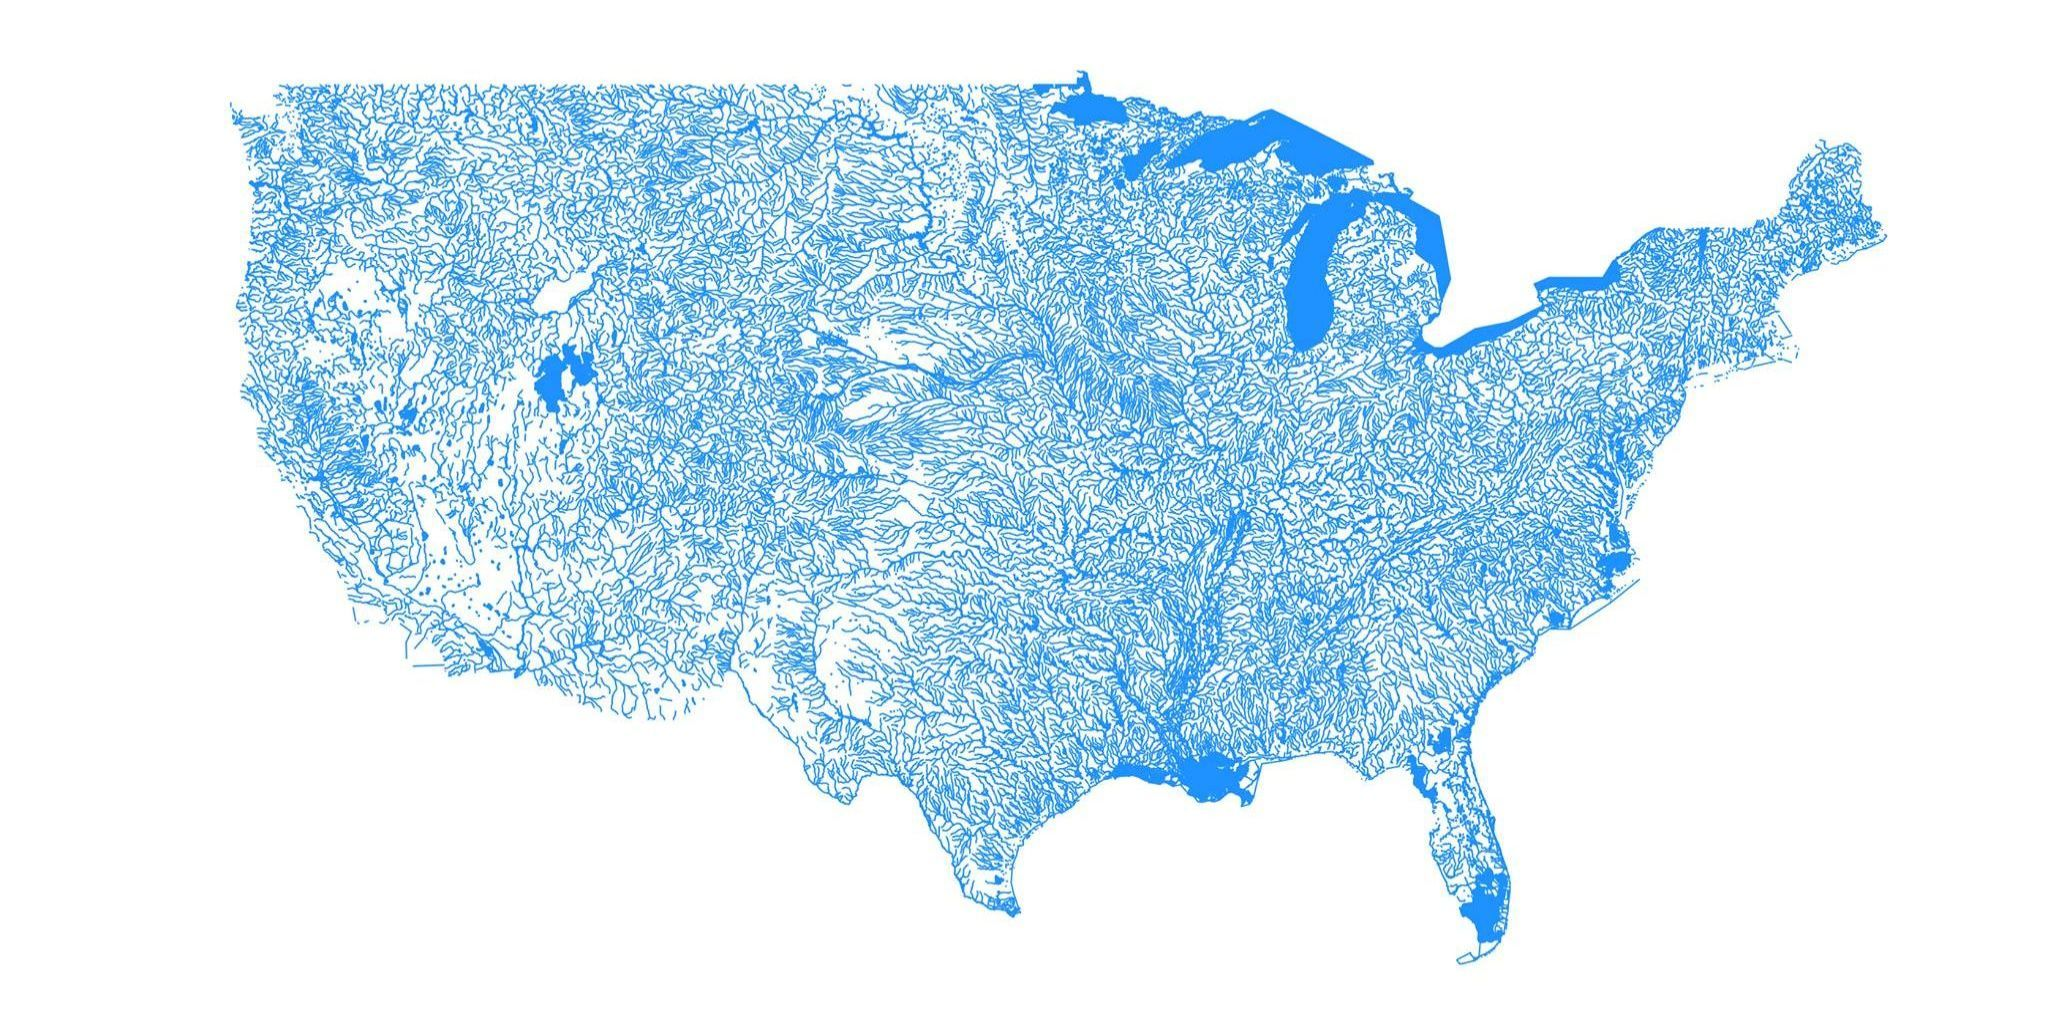 Gorgeous Map Shows the United States as Only Bodies of Water